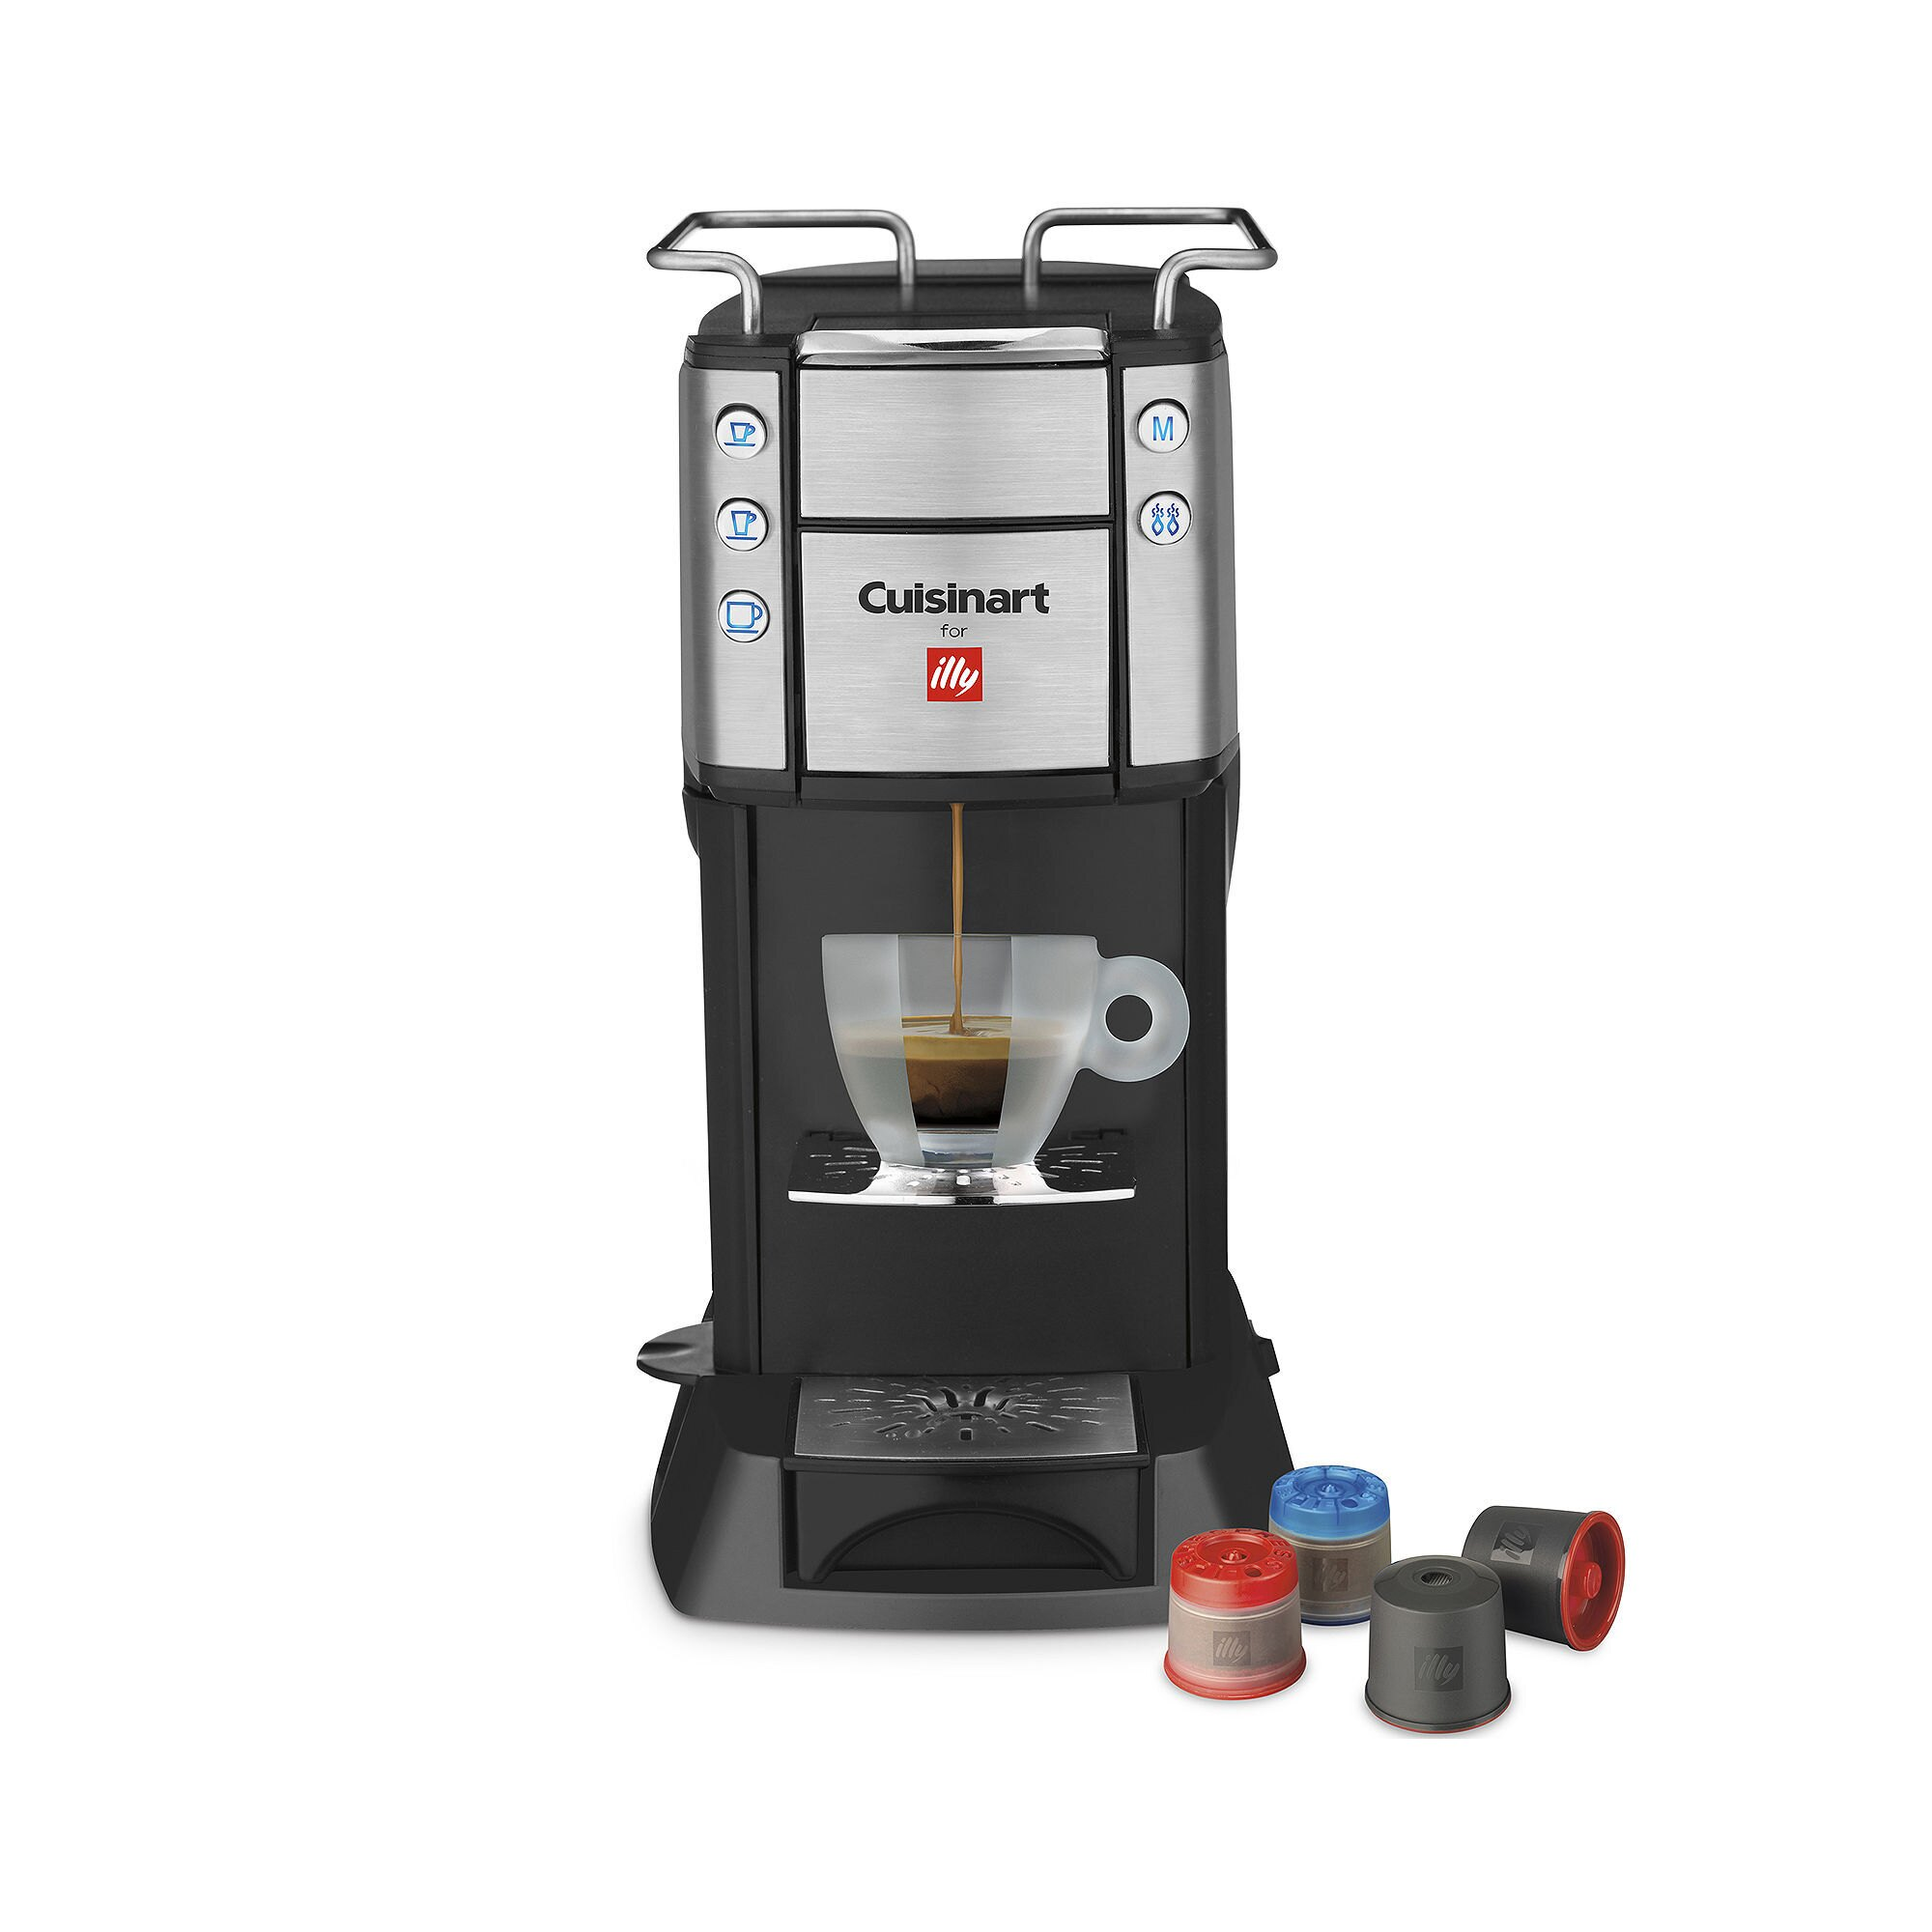 Cuisinart for illy single serve coffee machine illy eshop cuisinart for illy single serve front view geotapseo Gallery